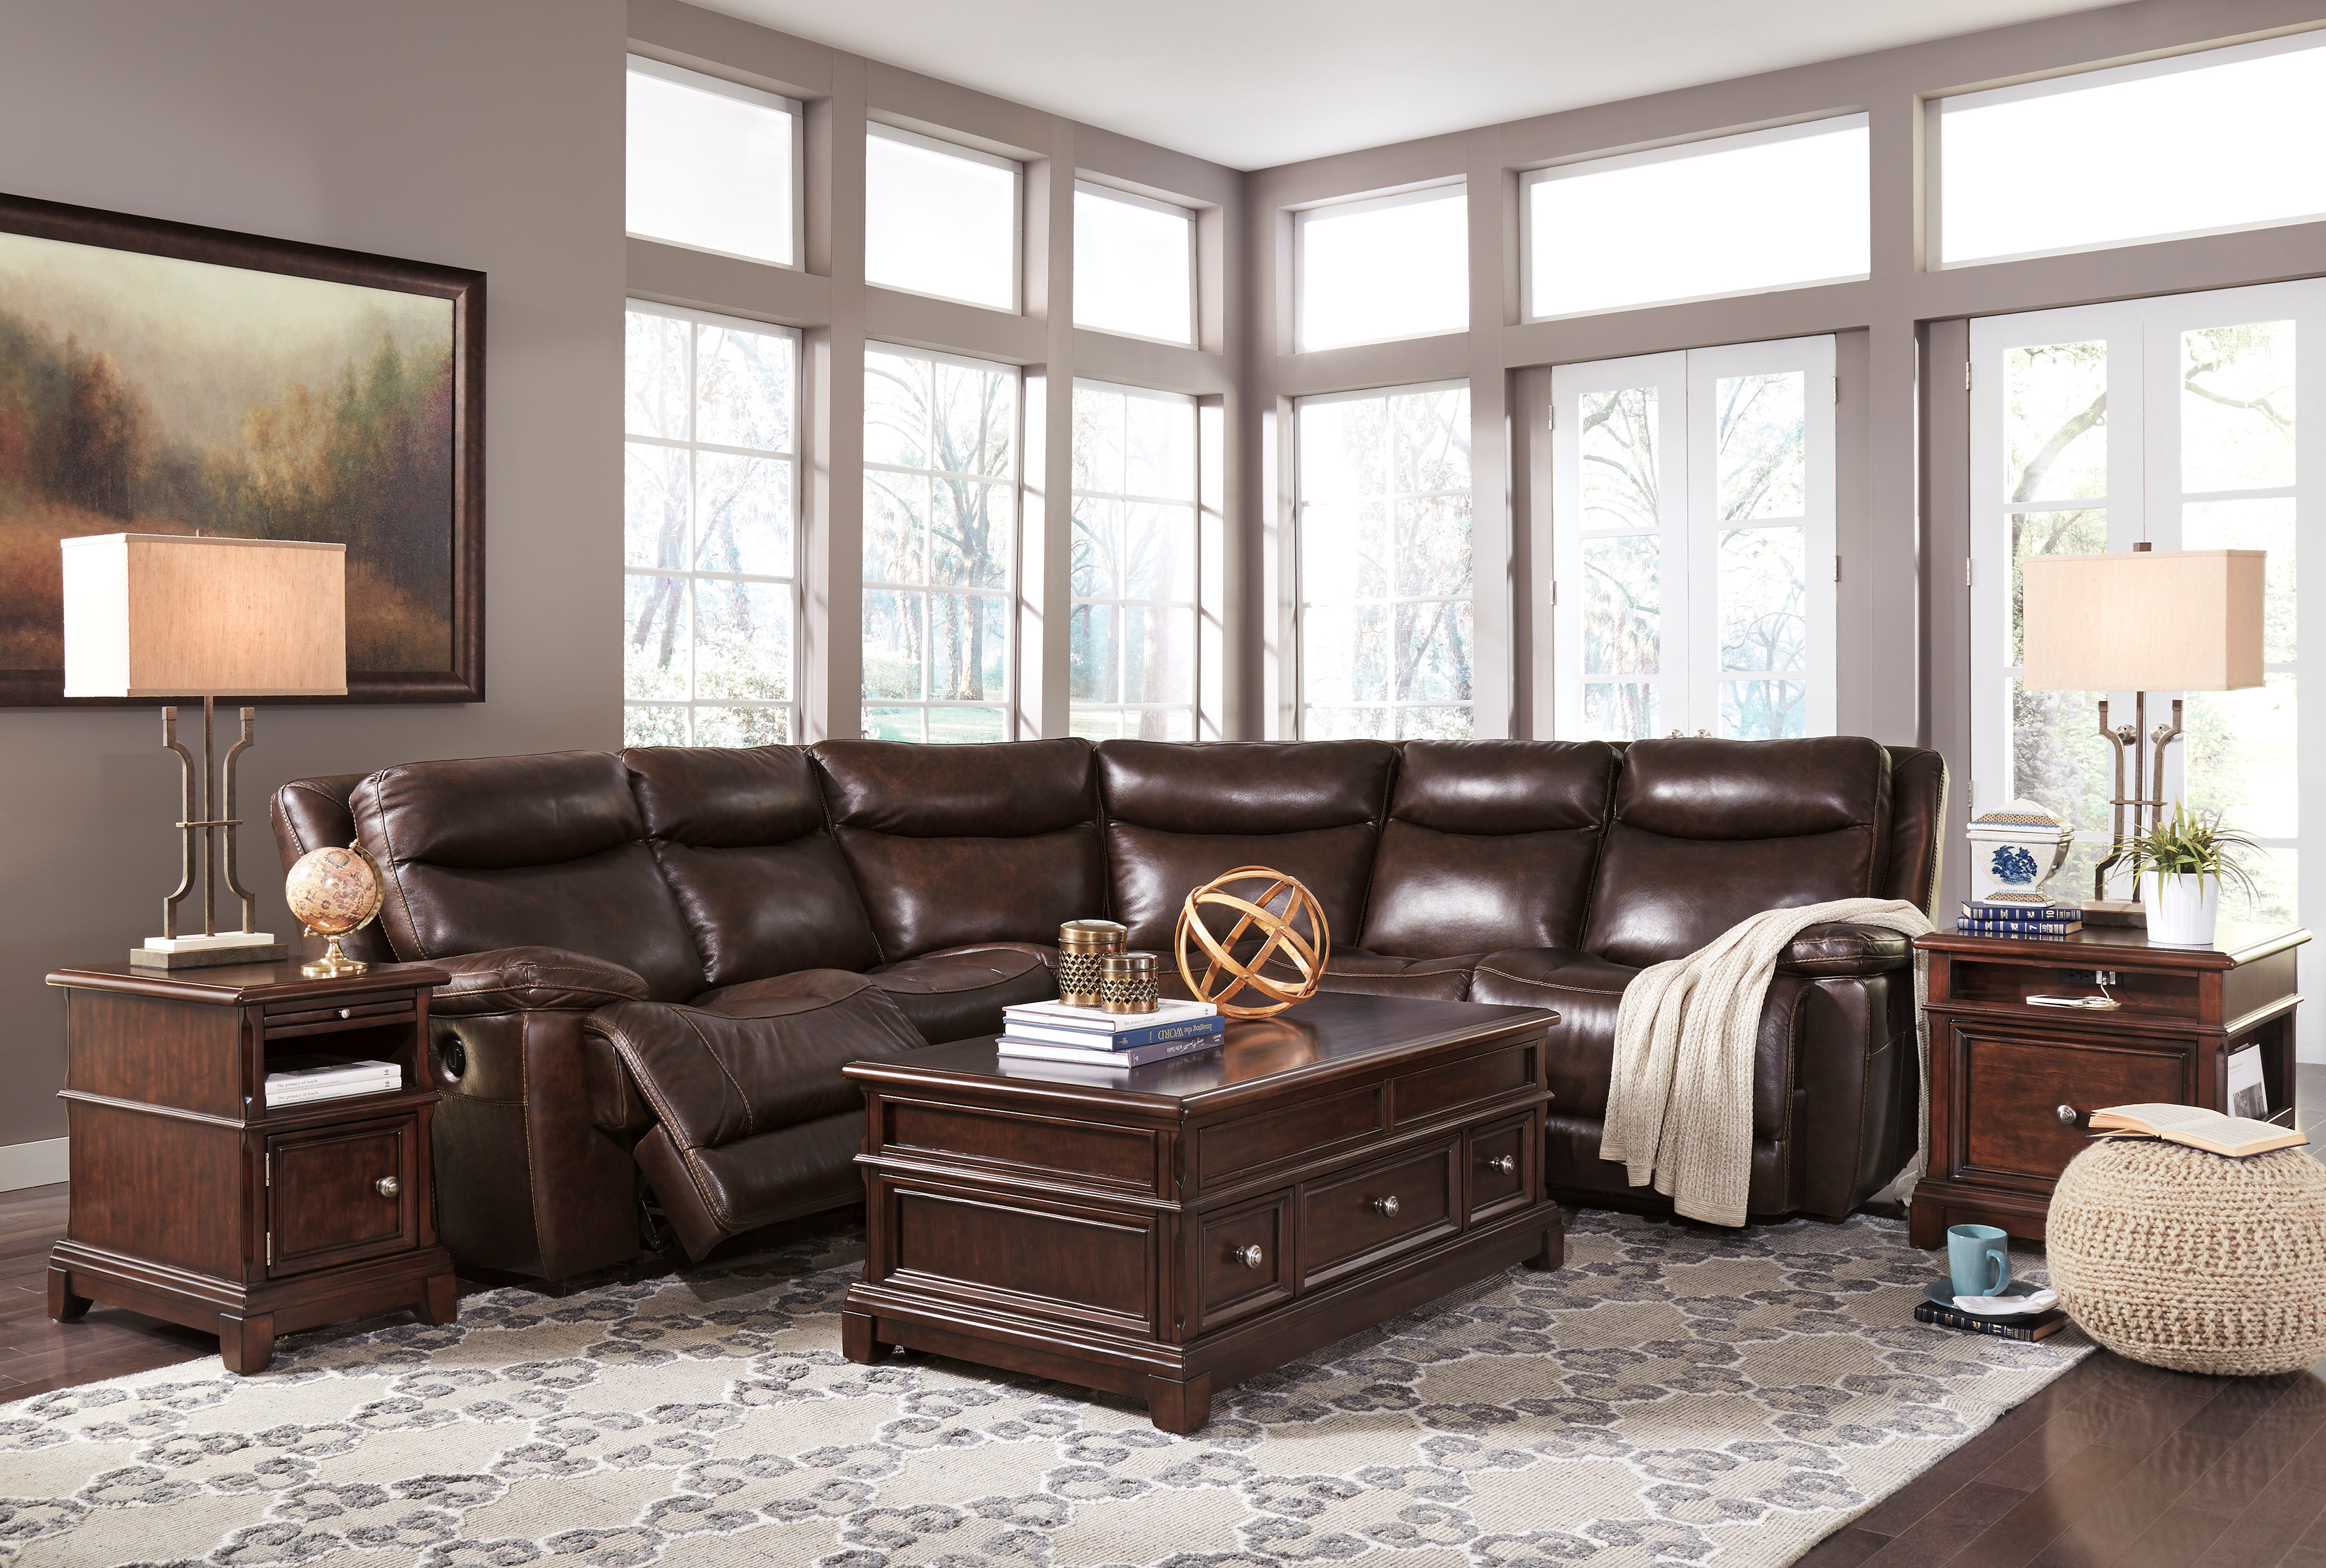 Cornerstone Furniture Inc In Decatur Al 256 351 8